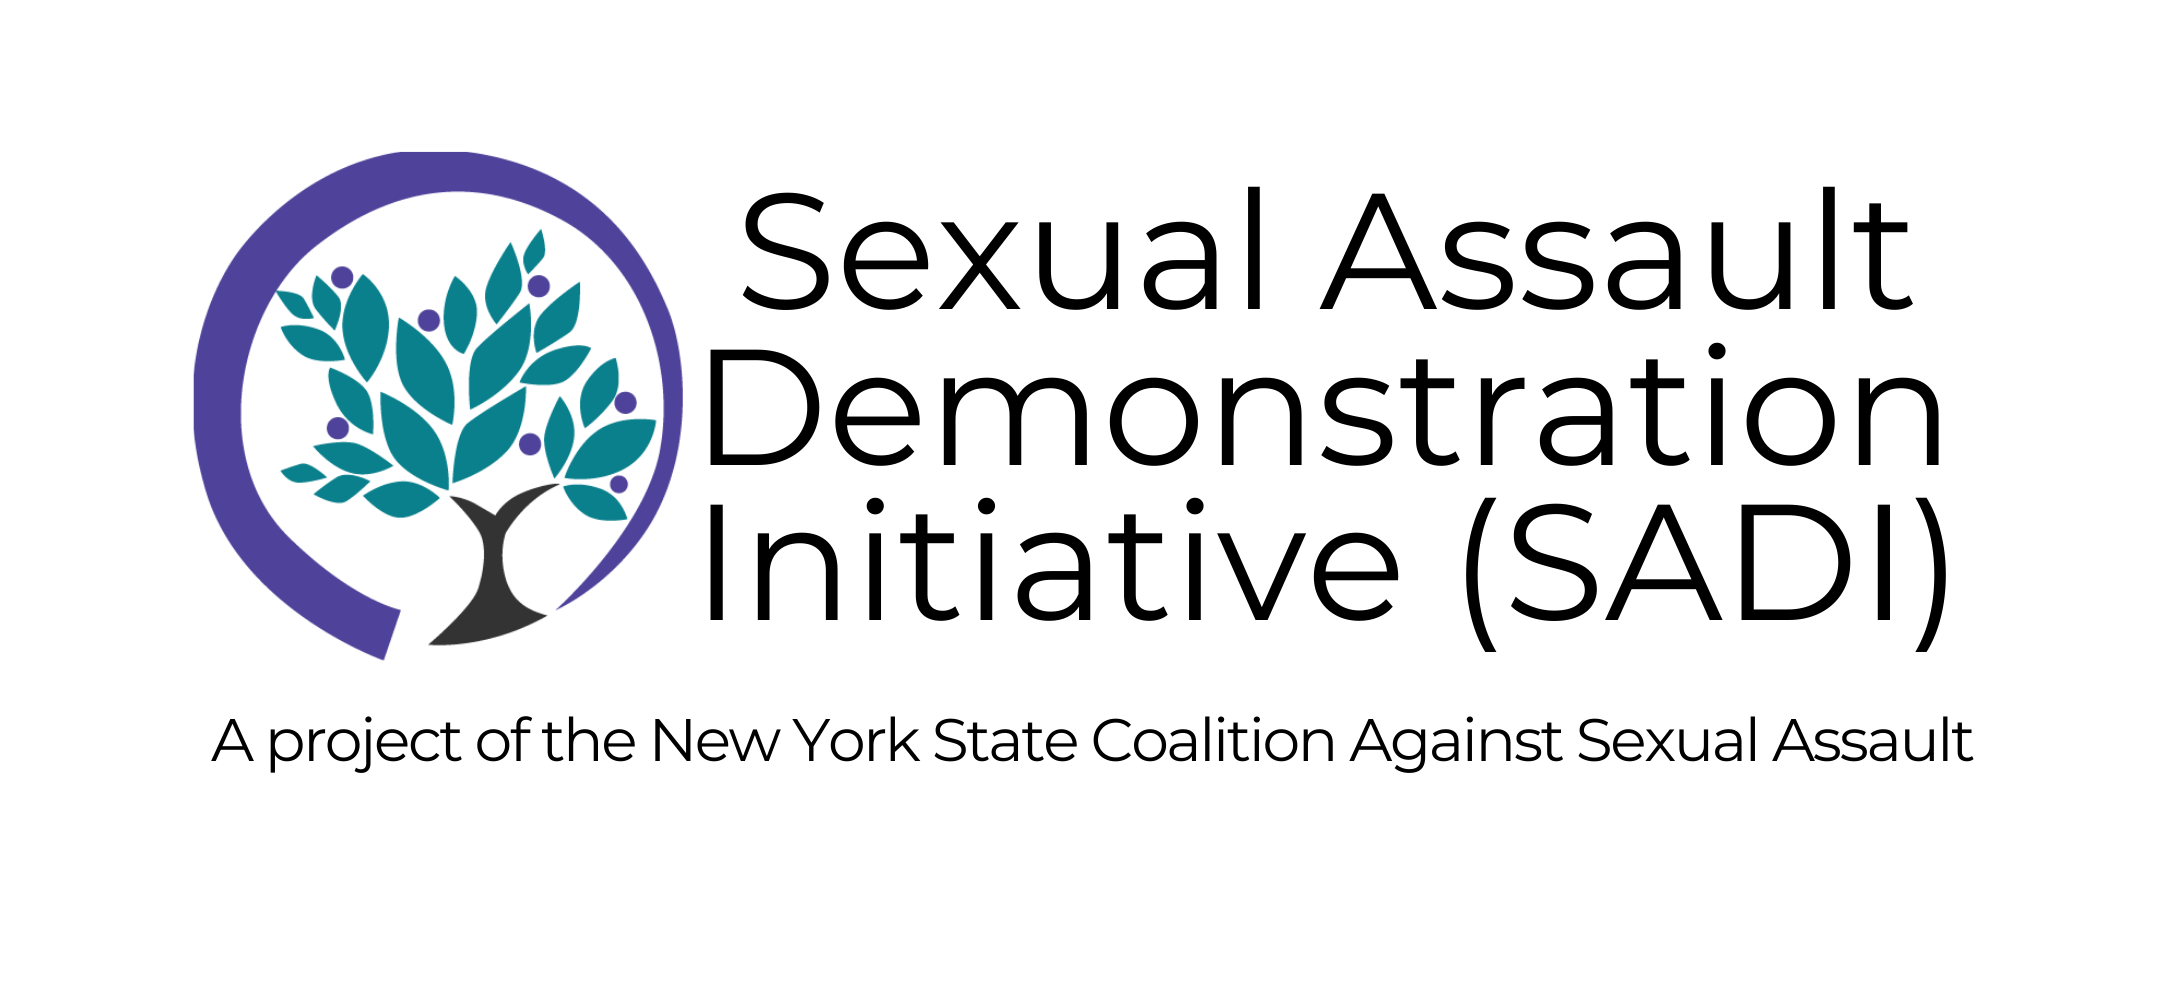 Announcing the NYSCASA Sexual Assault Demonstration Initiative – Cohort Period 1 Applications Due February 10, 2021